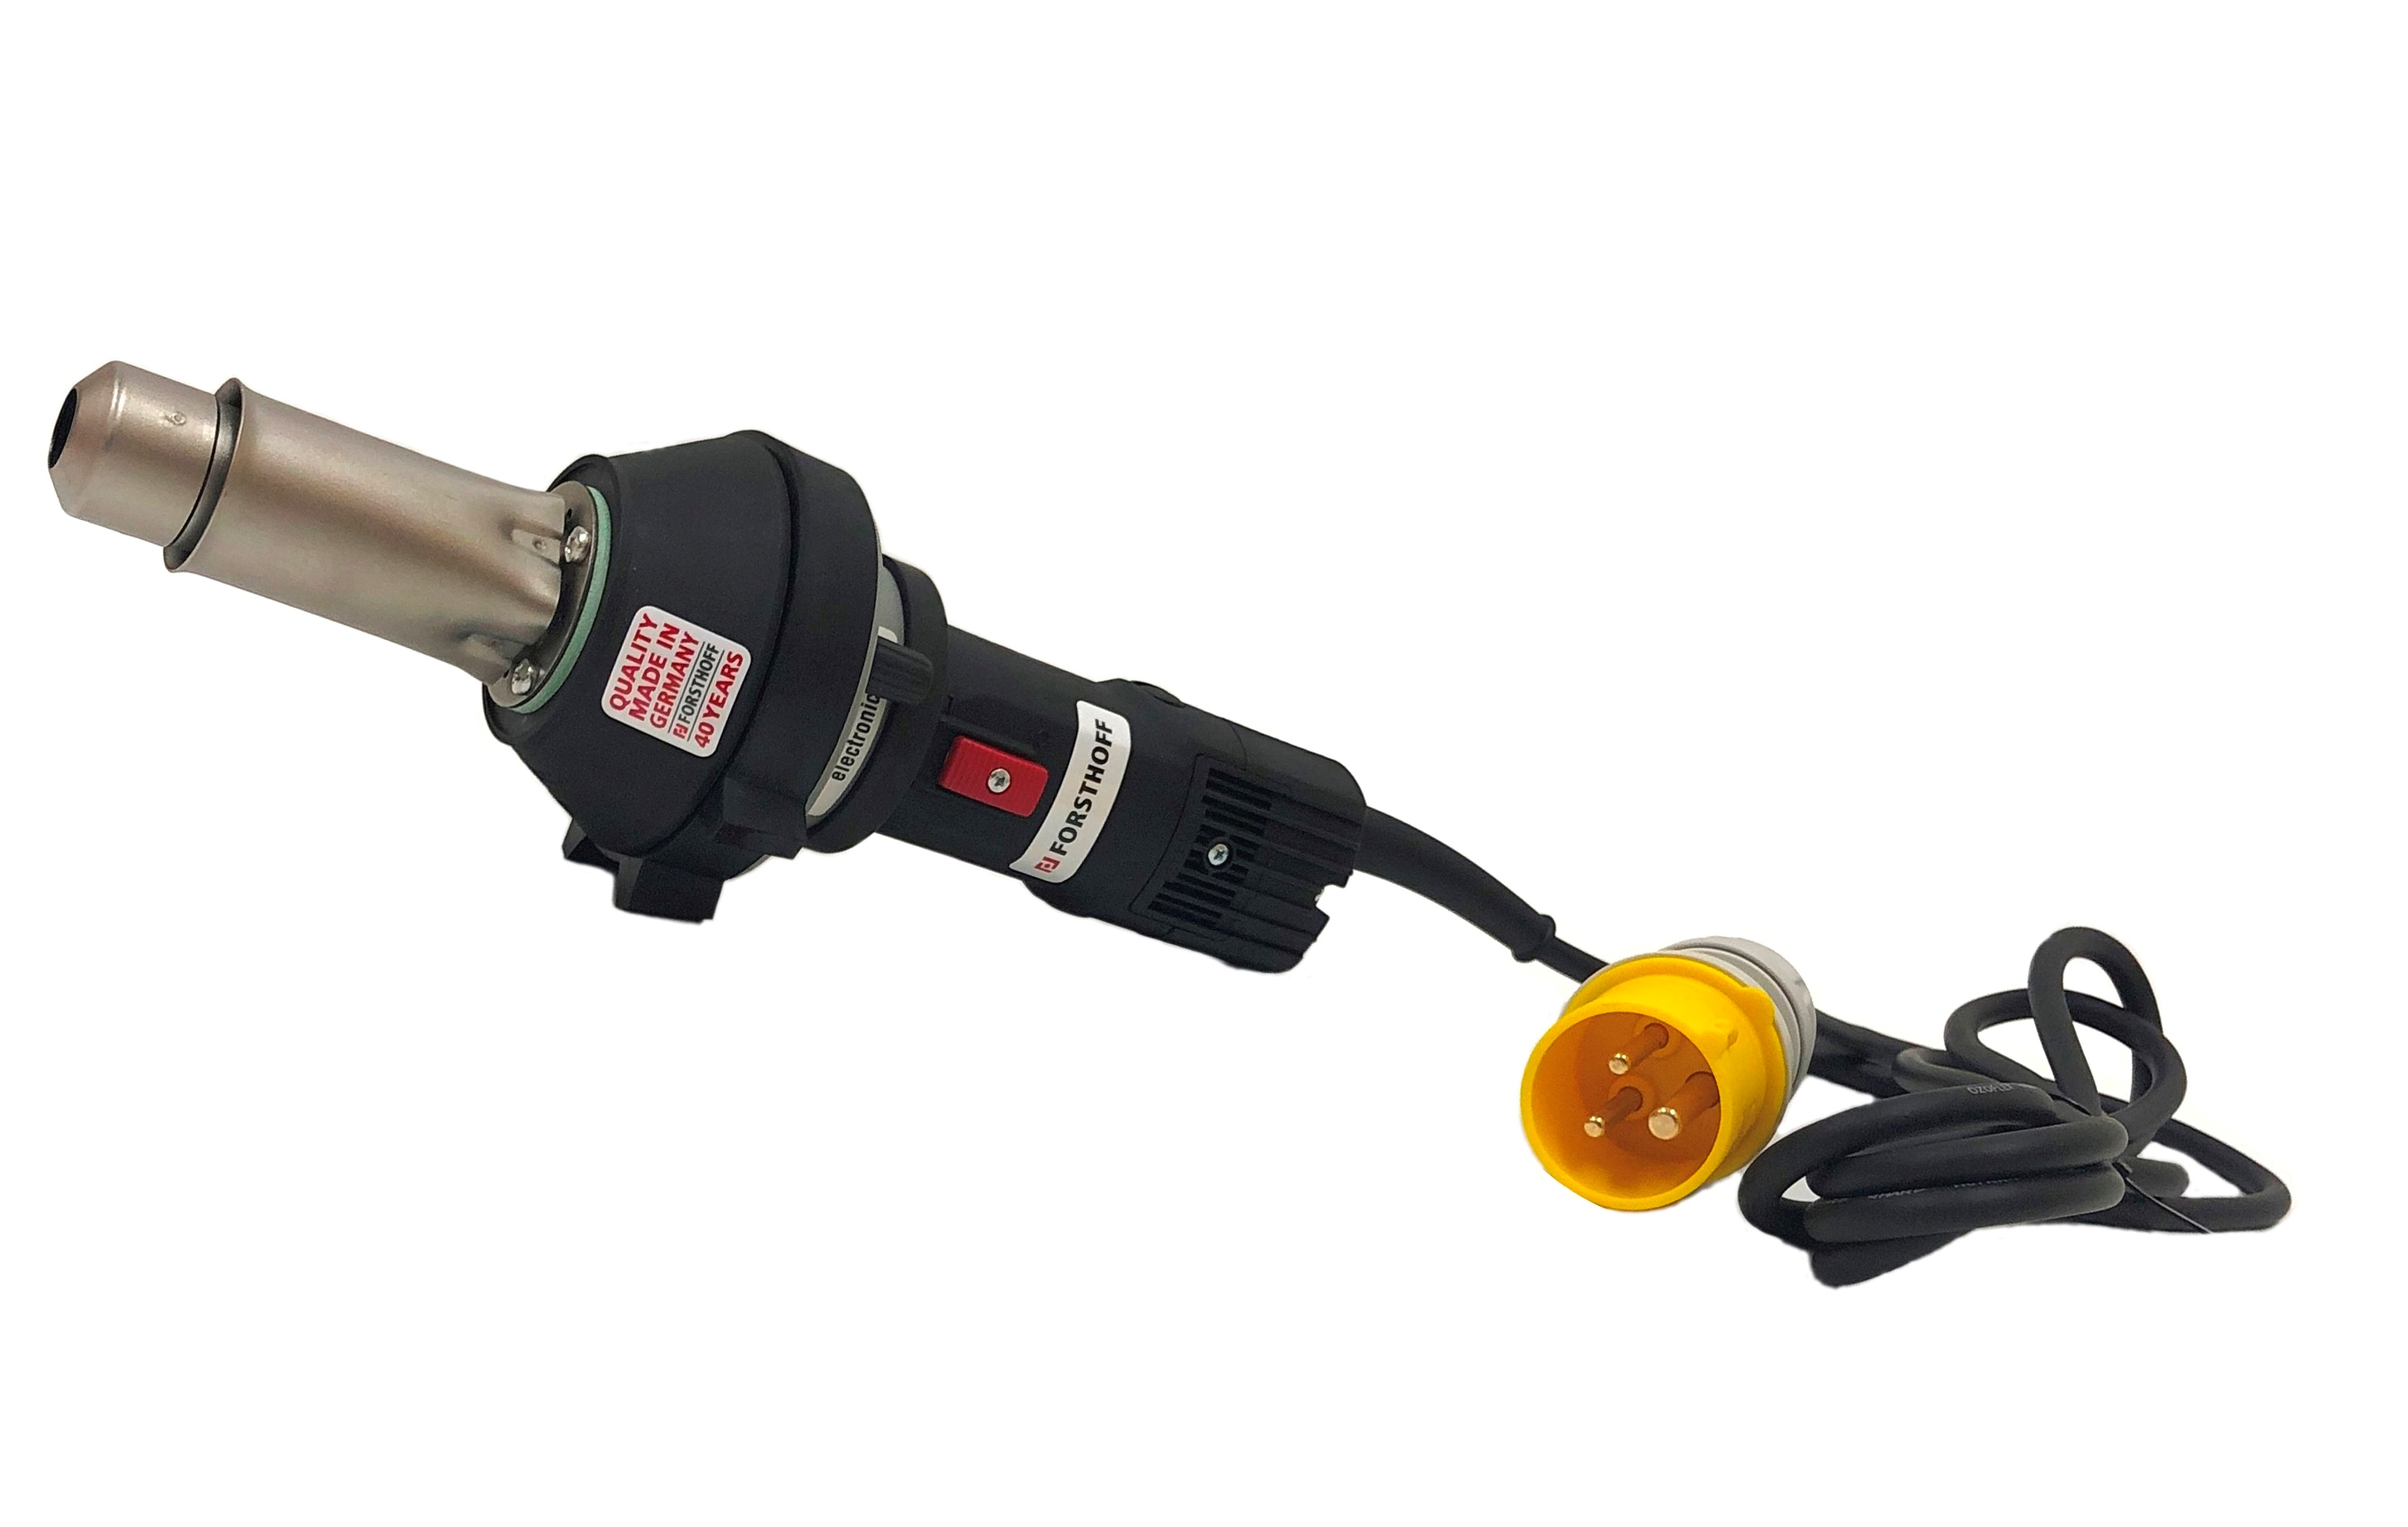 110v QLE Hot Air Gun Torch Tool Plastic Repair & Fabrication